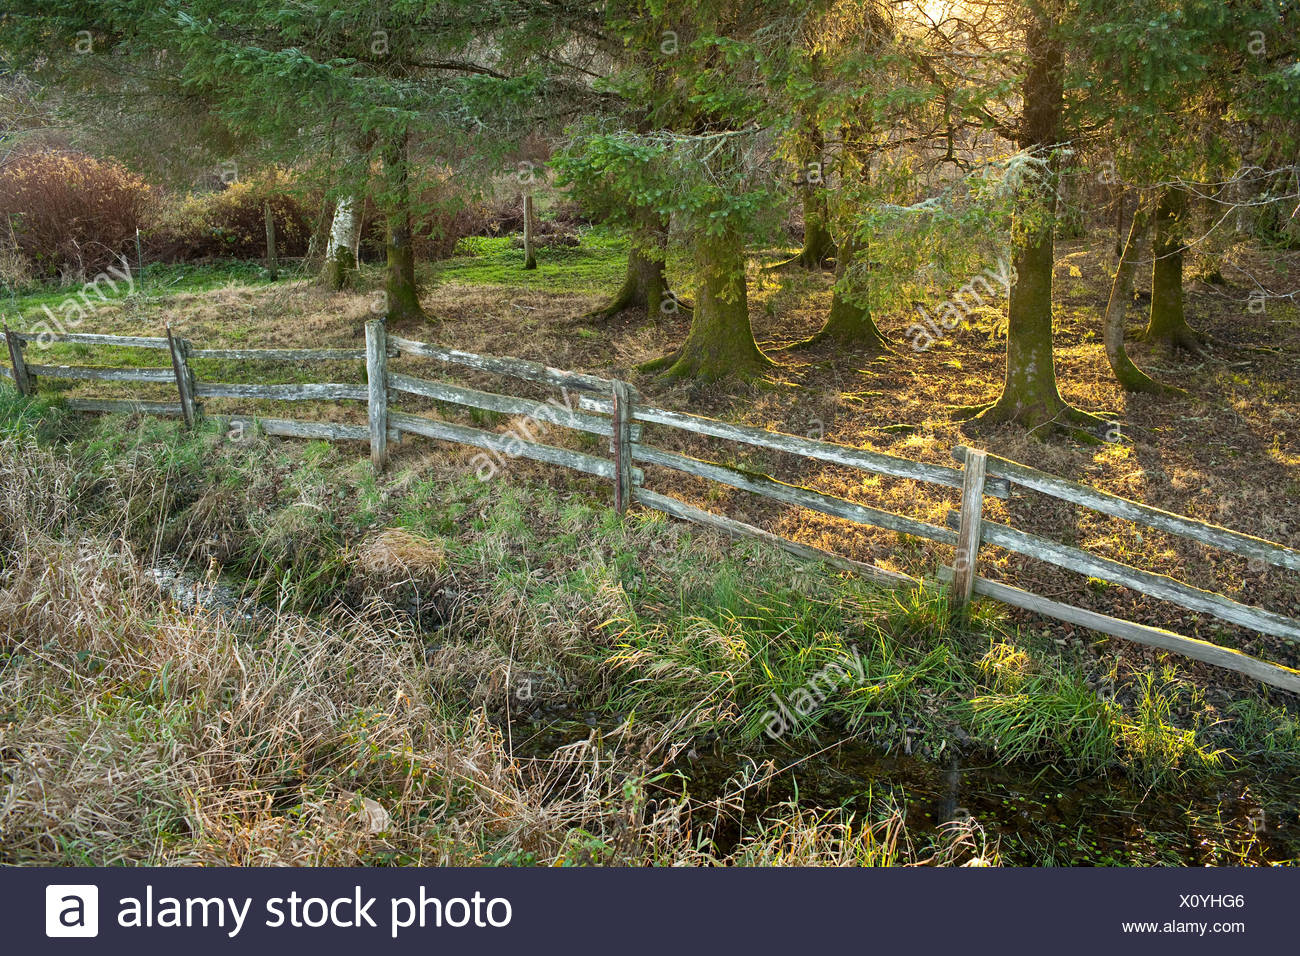 Wooden fence in forest - Stock Image